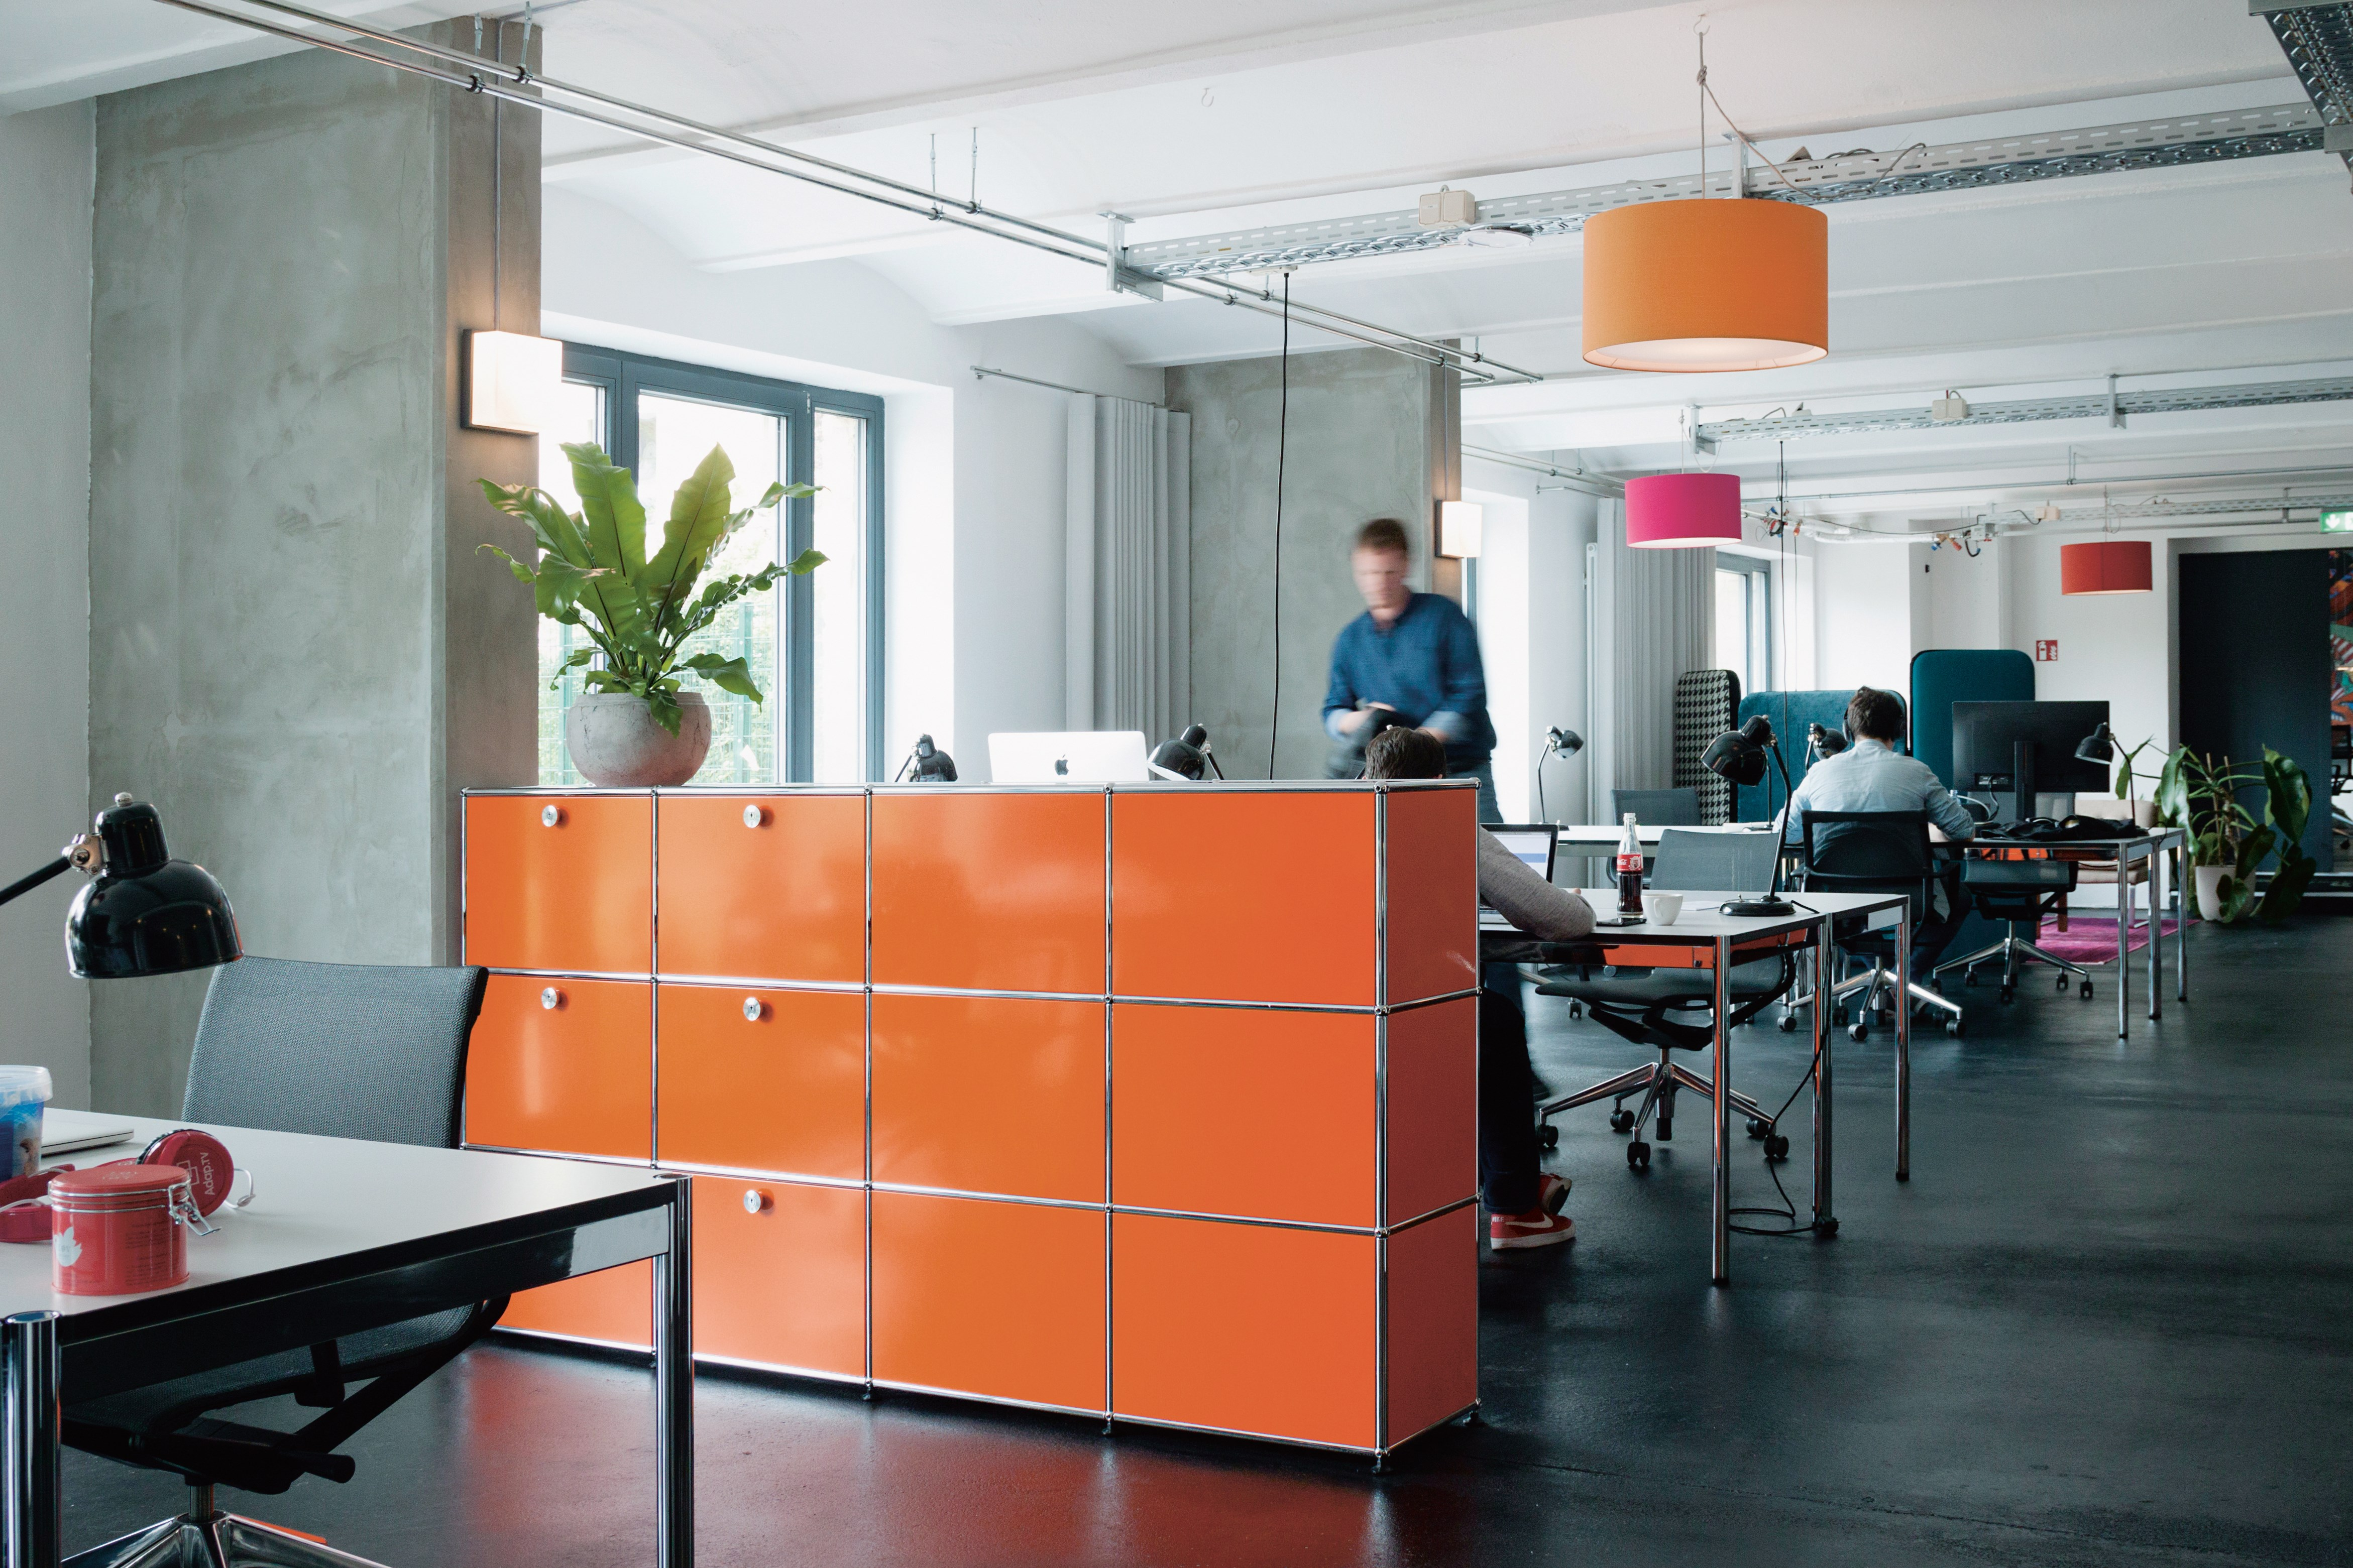 orange and chrome USM haller office partition with storage cabinets in a contemporary office